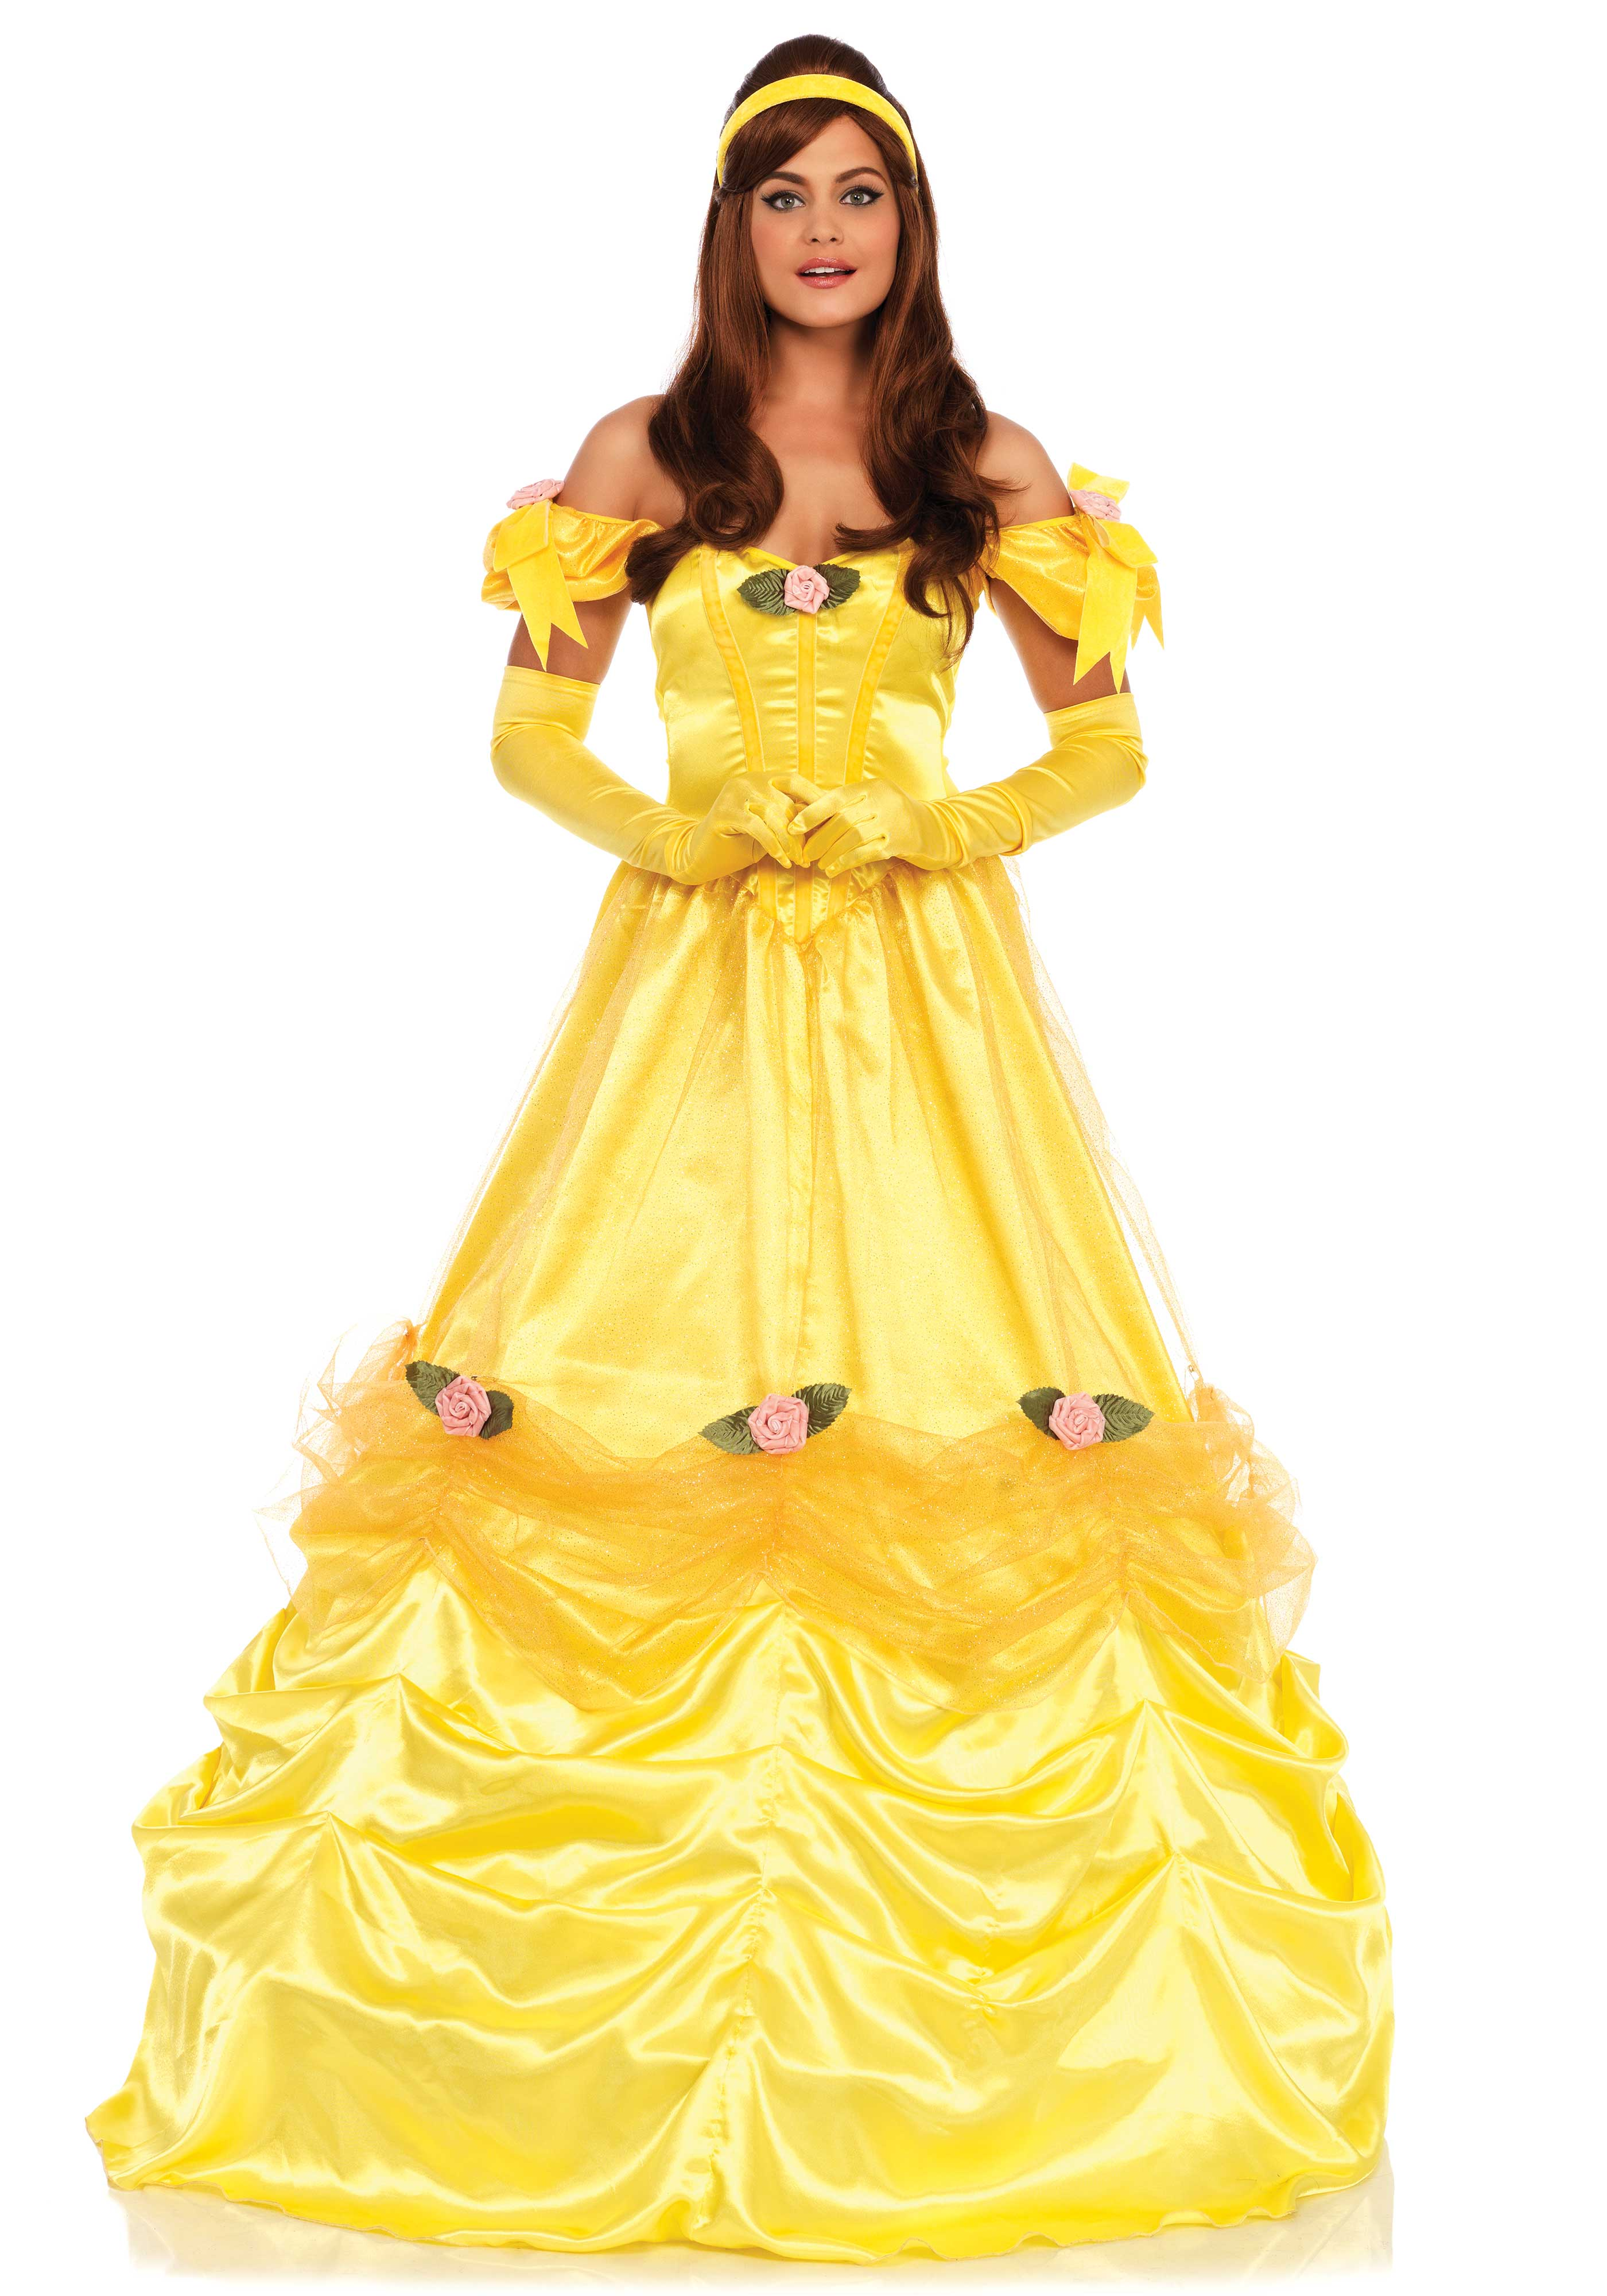 Women's Belle of the Ball Costume Dress